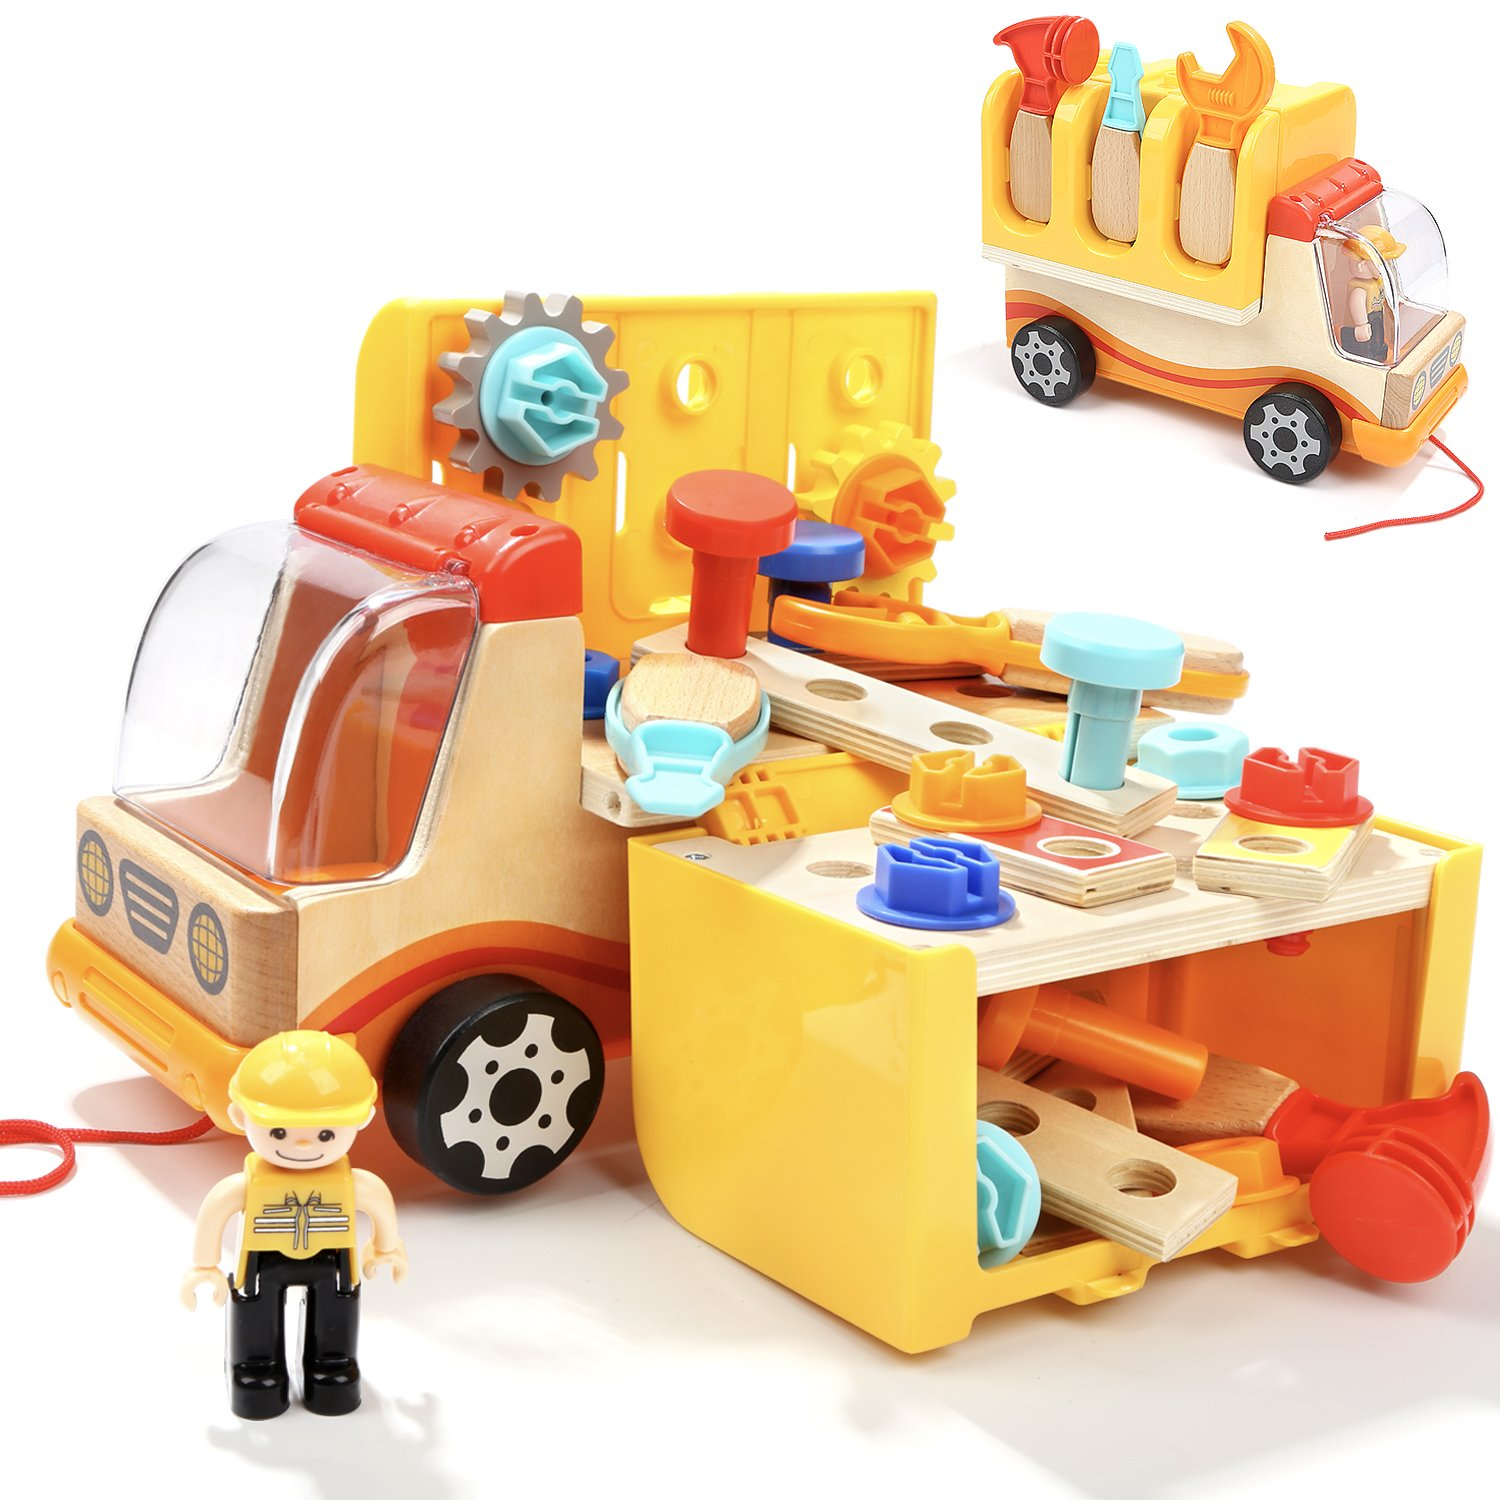 TOP BRIGHT Toddler Tools Toys Set for 2 Year Old Boy Gifts Trucks Sun Top